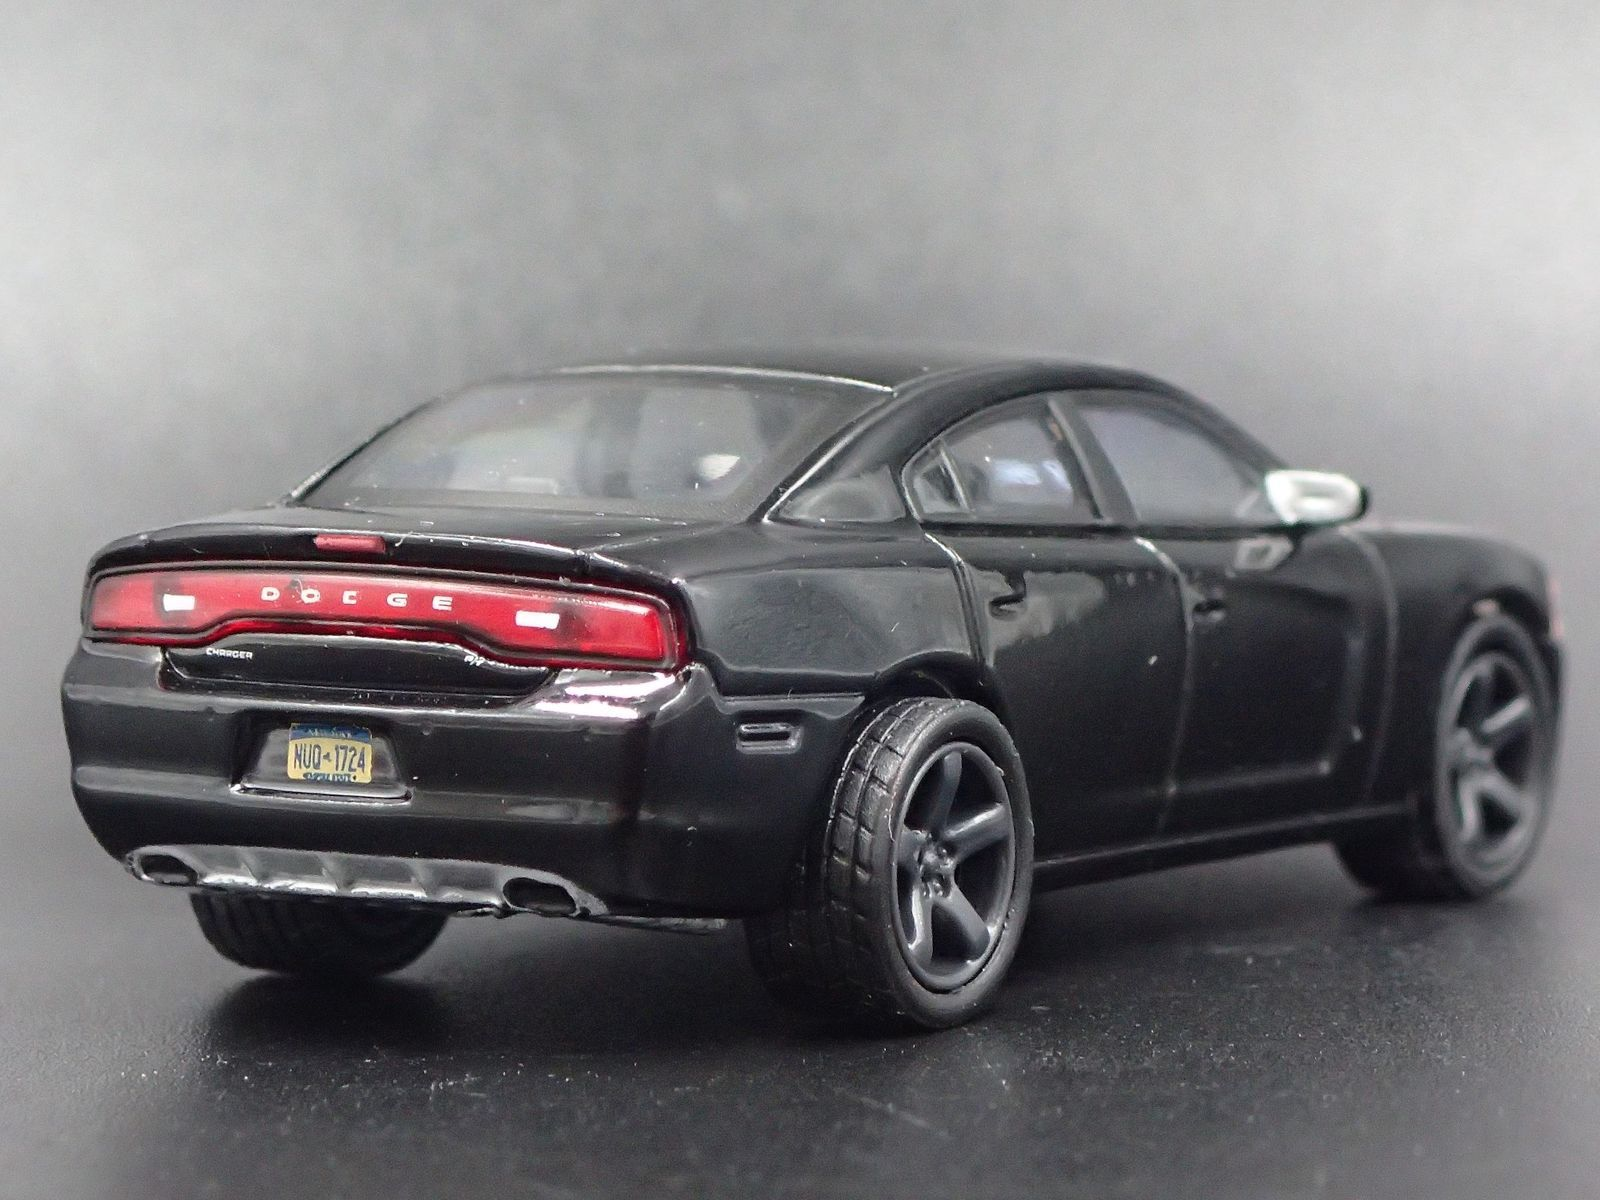 11 Dodge Charger Sxt Hollywood Series 19 John Wick 2018 Wheelco In Ua